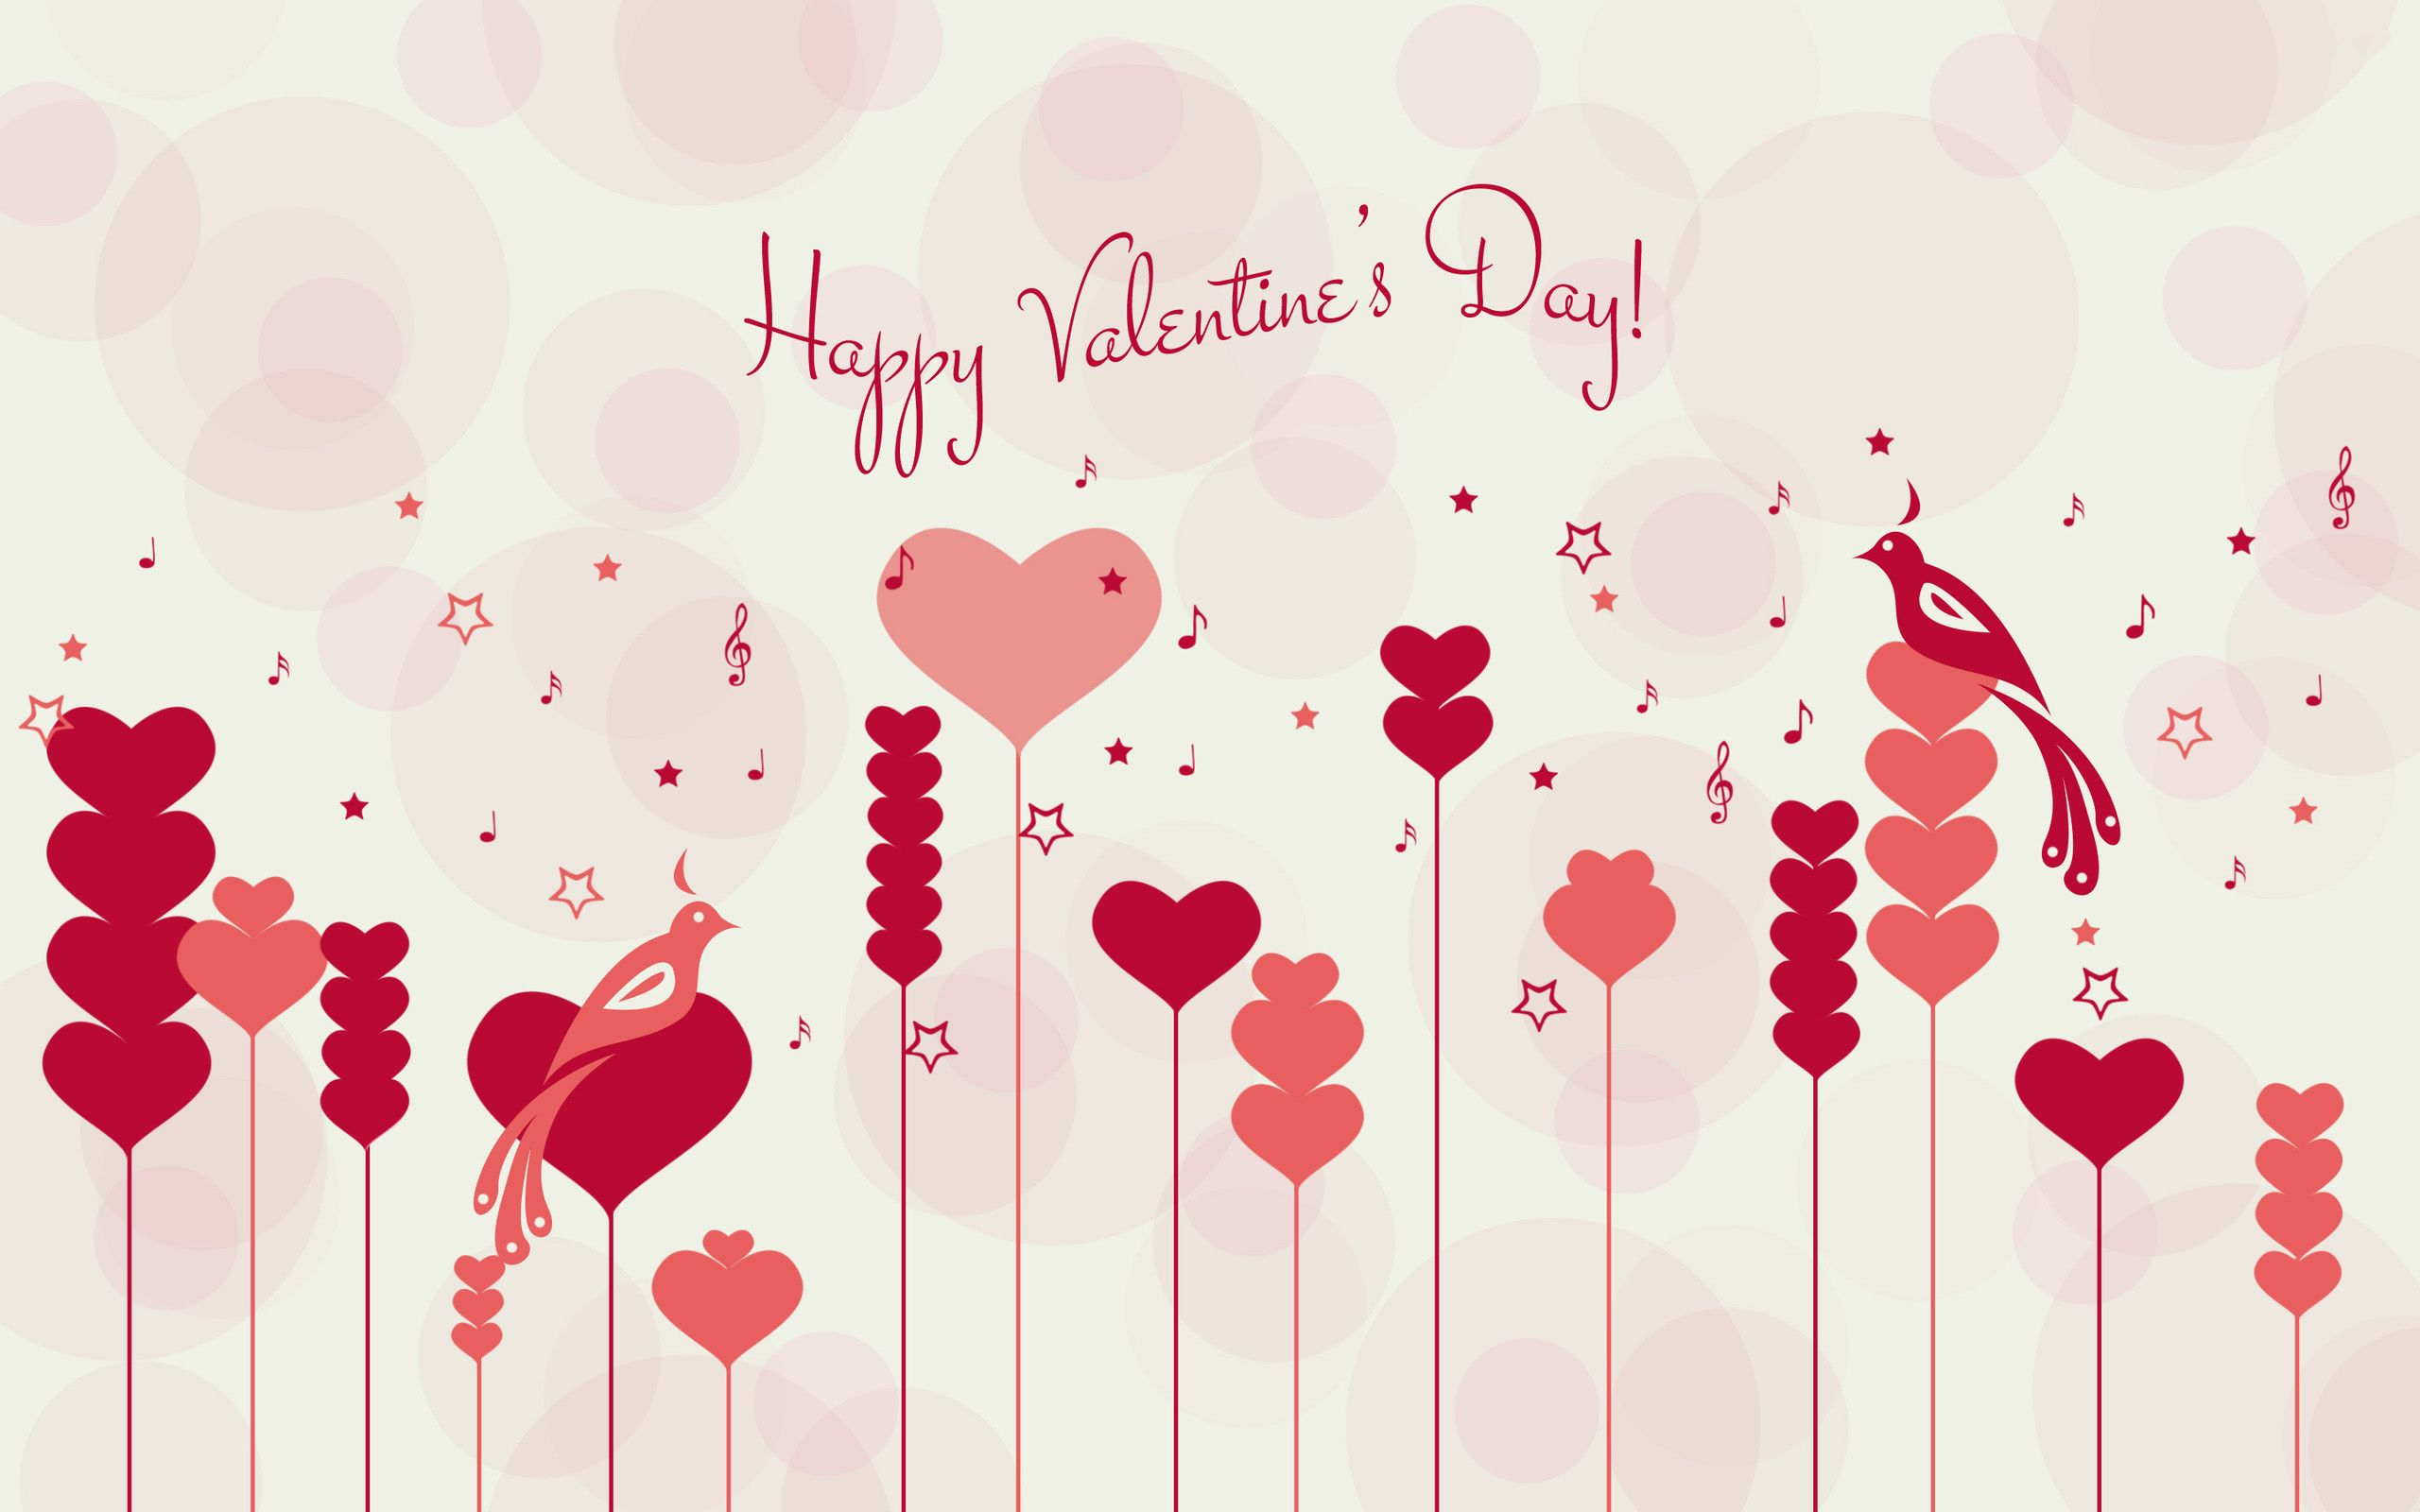 happy valentines day hd wallpaper image wishes gift pics